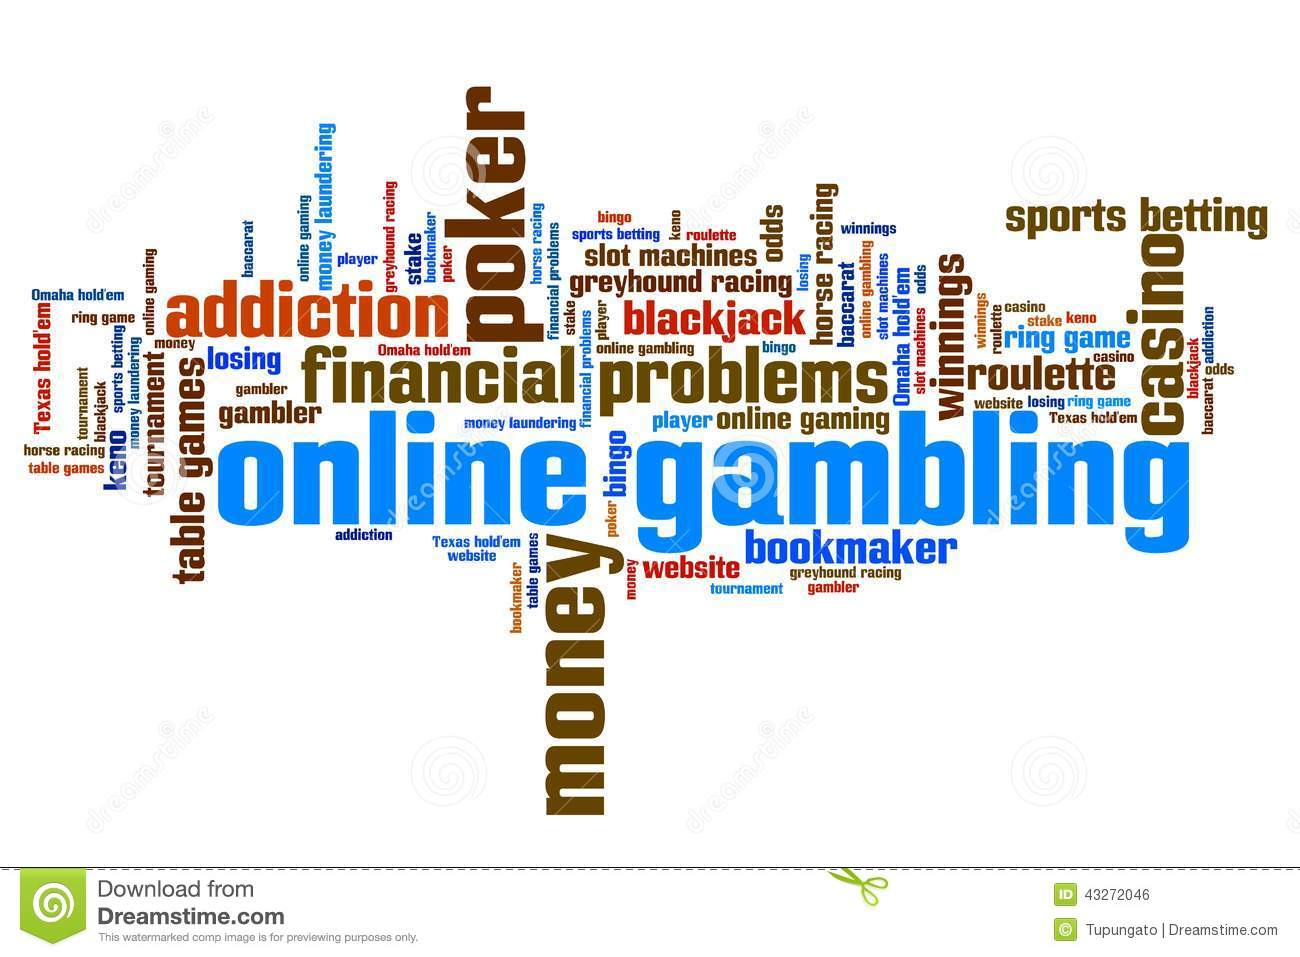 staging an intervention for gambling